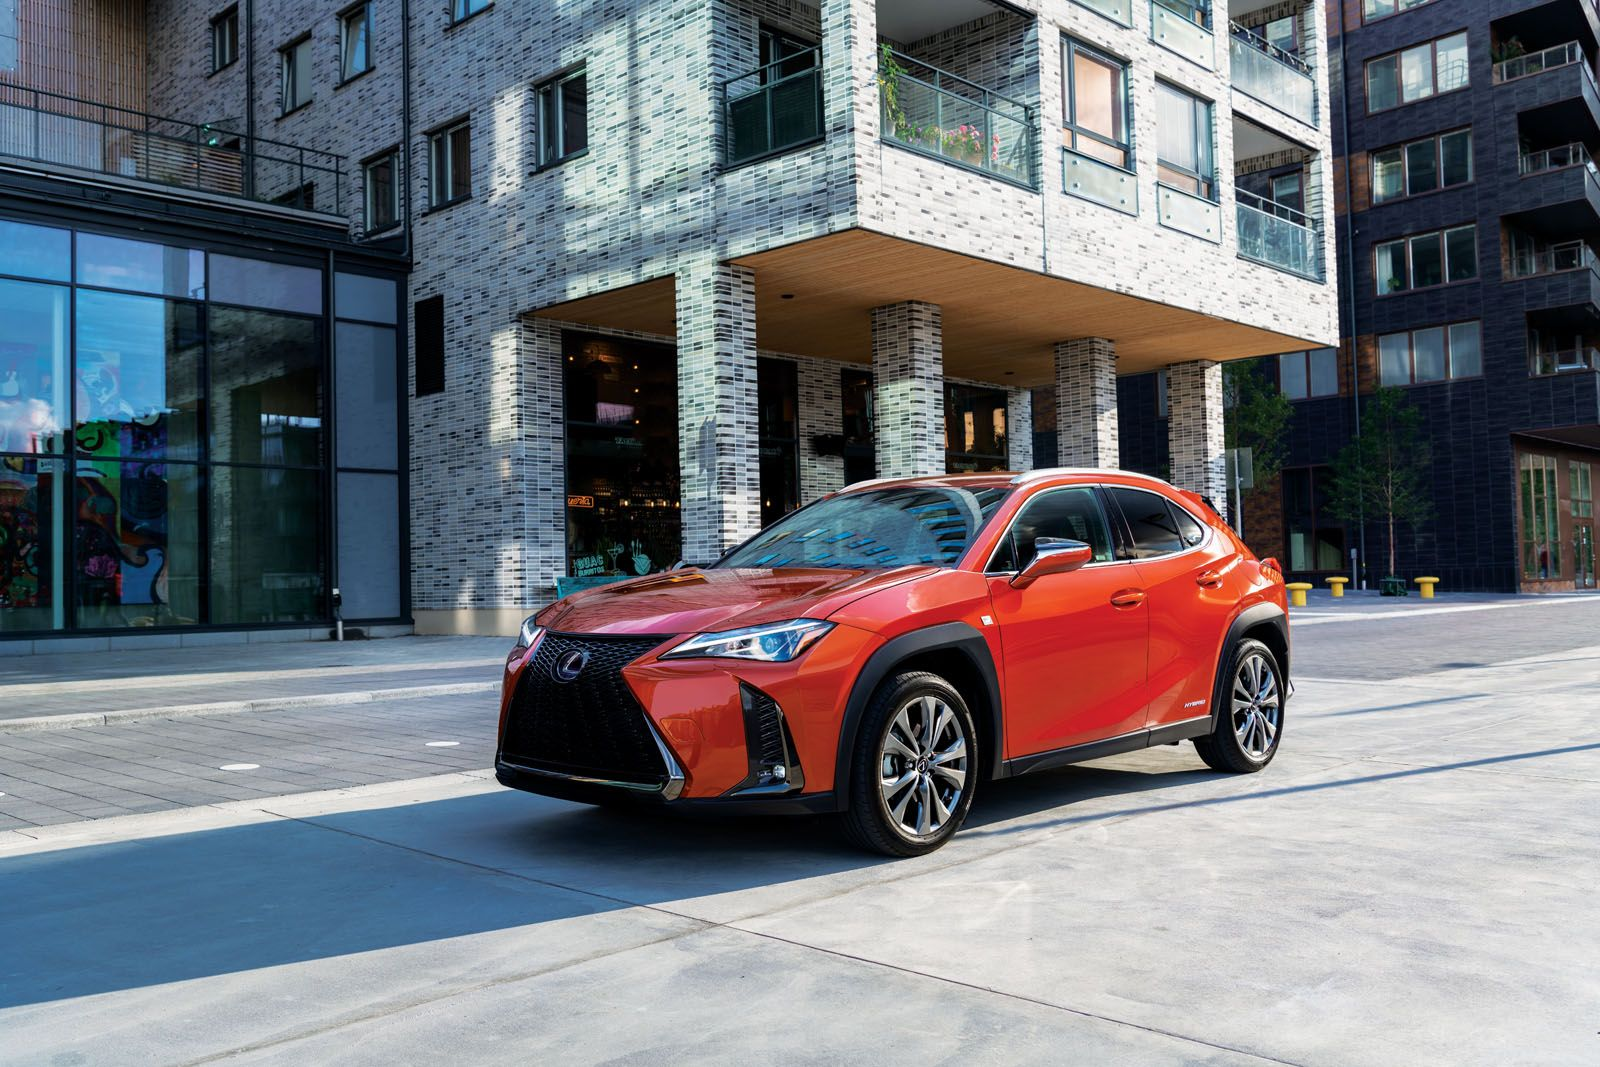 With a striking spindle grille, triple LED headlights and sharp creases, the Lexus UX is a fresh and crisp output of Japanese design